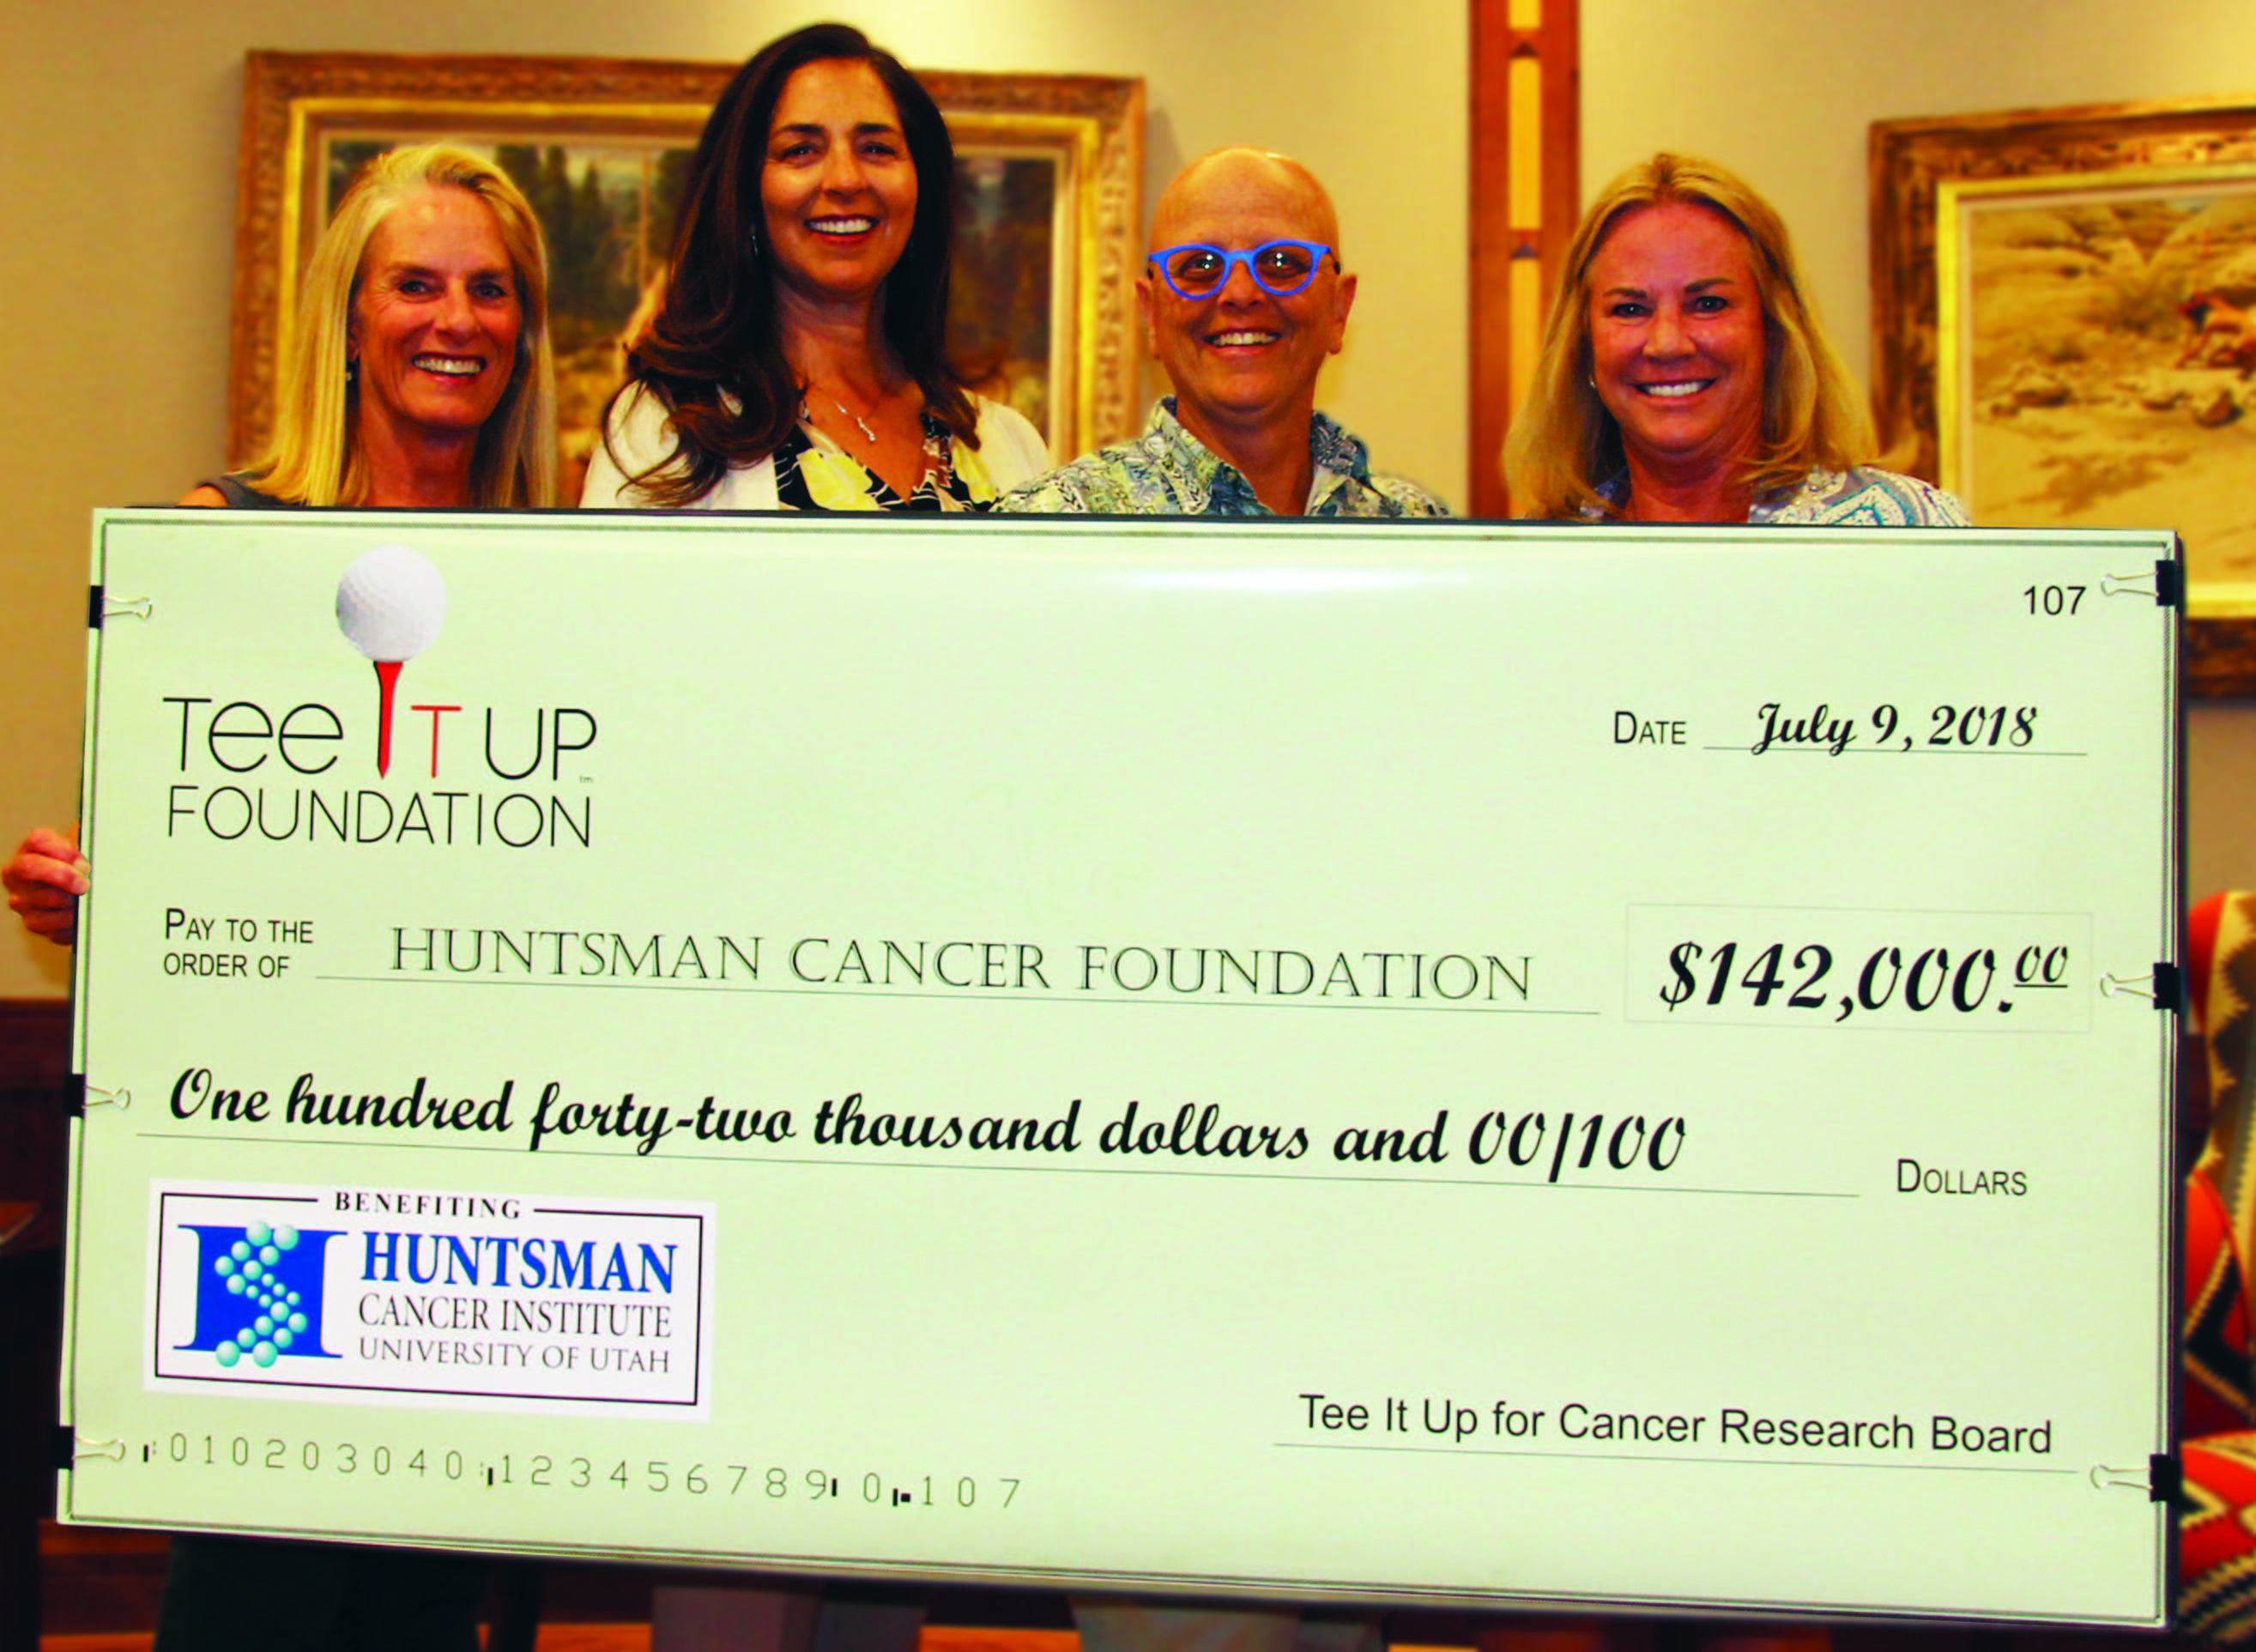 Teeitup foundation presents Huntsman Cancer Foundation a check for $142,000 2018